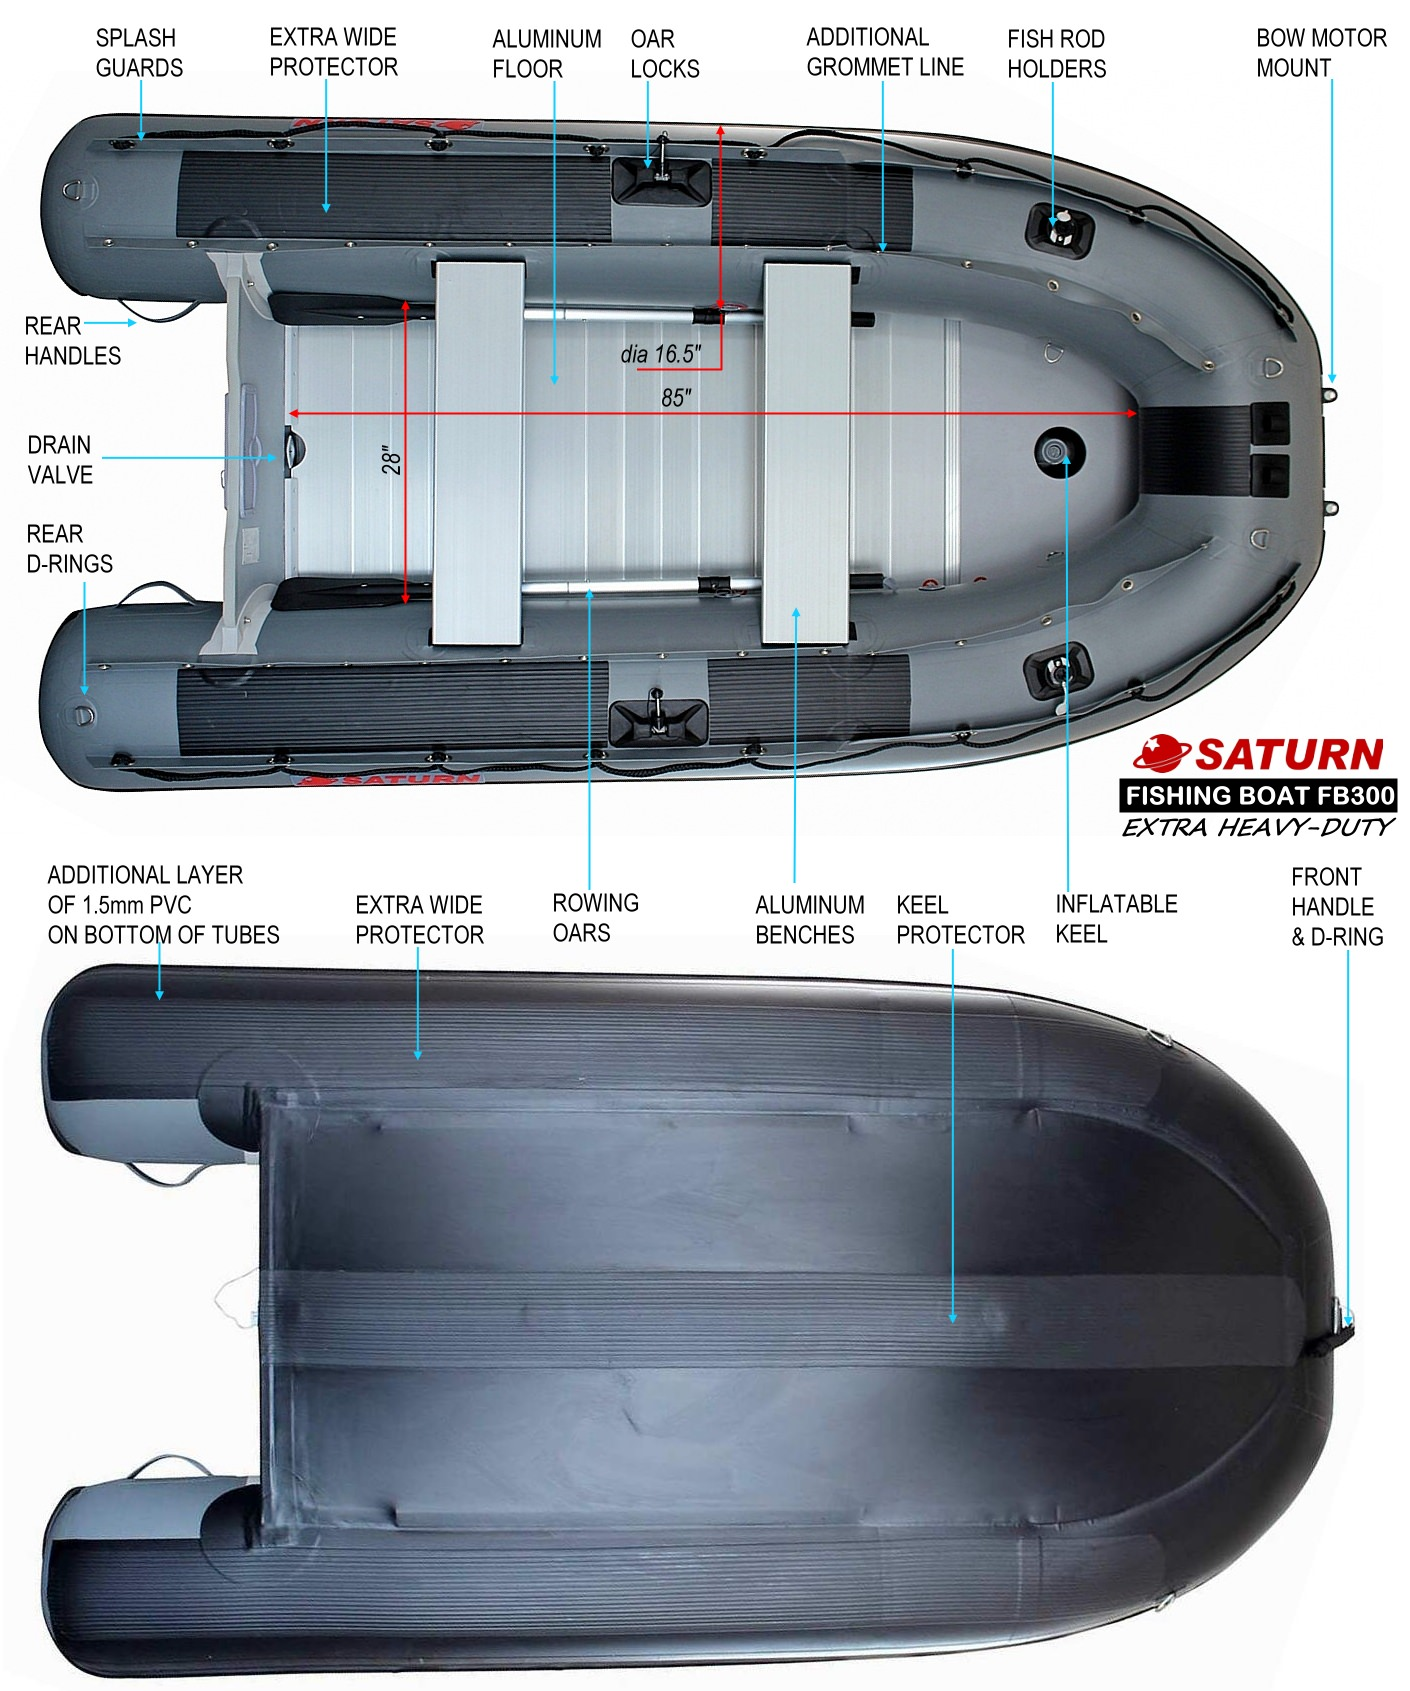 Saturn FB300 Inflatable Boat Specifications